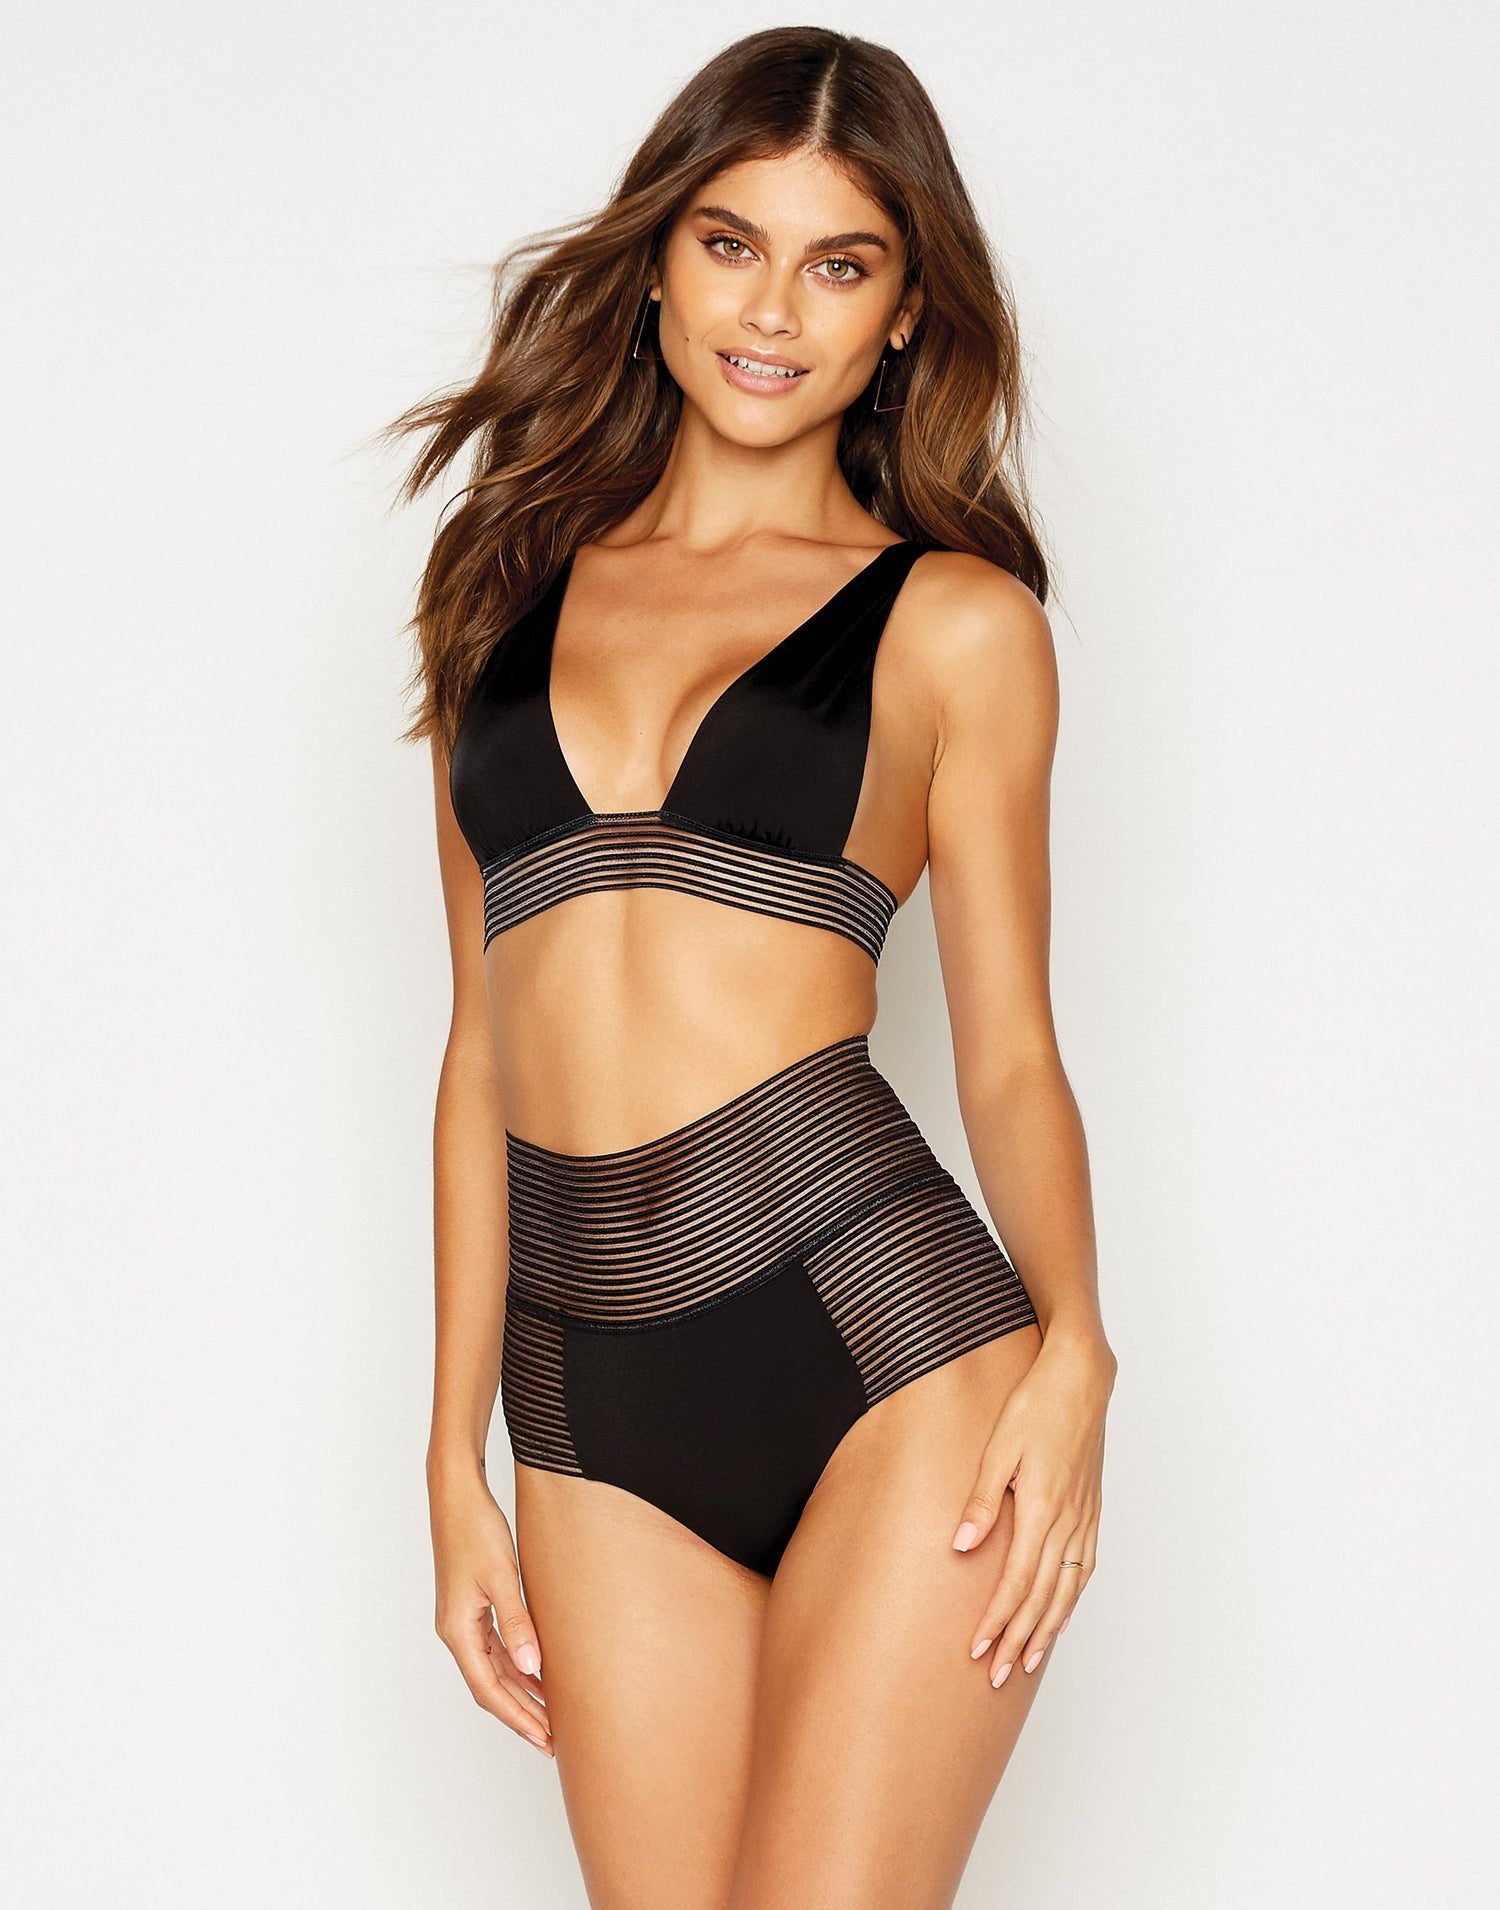 Sheer Addiction High Waist Bikini Bottom in Black with Sheer Elastic Stripes - front view